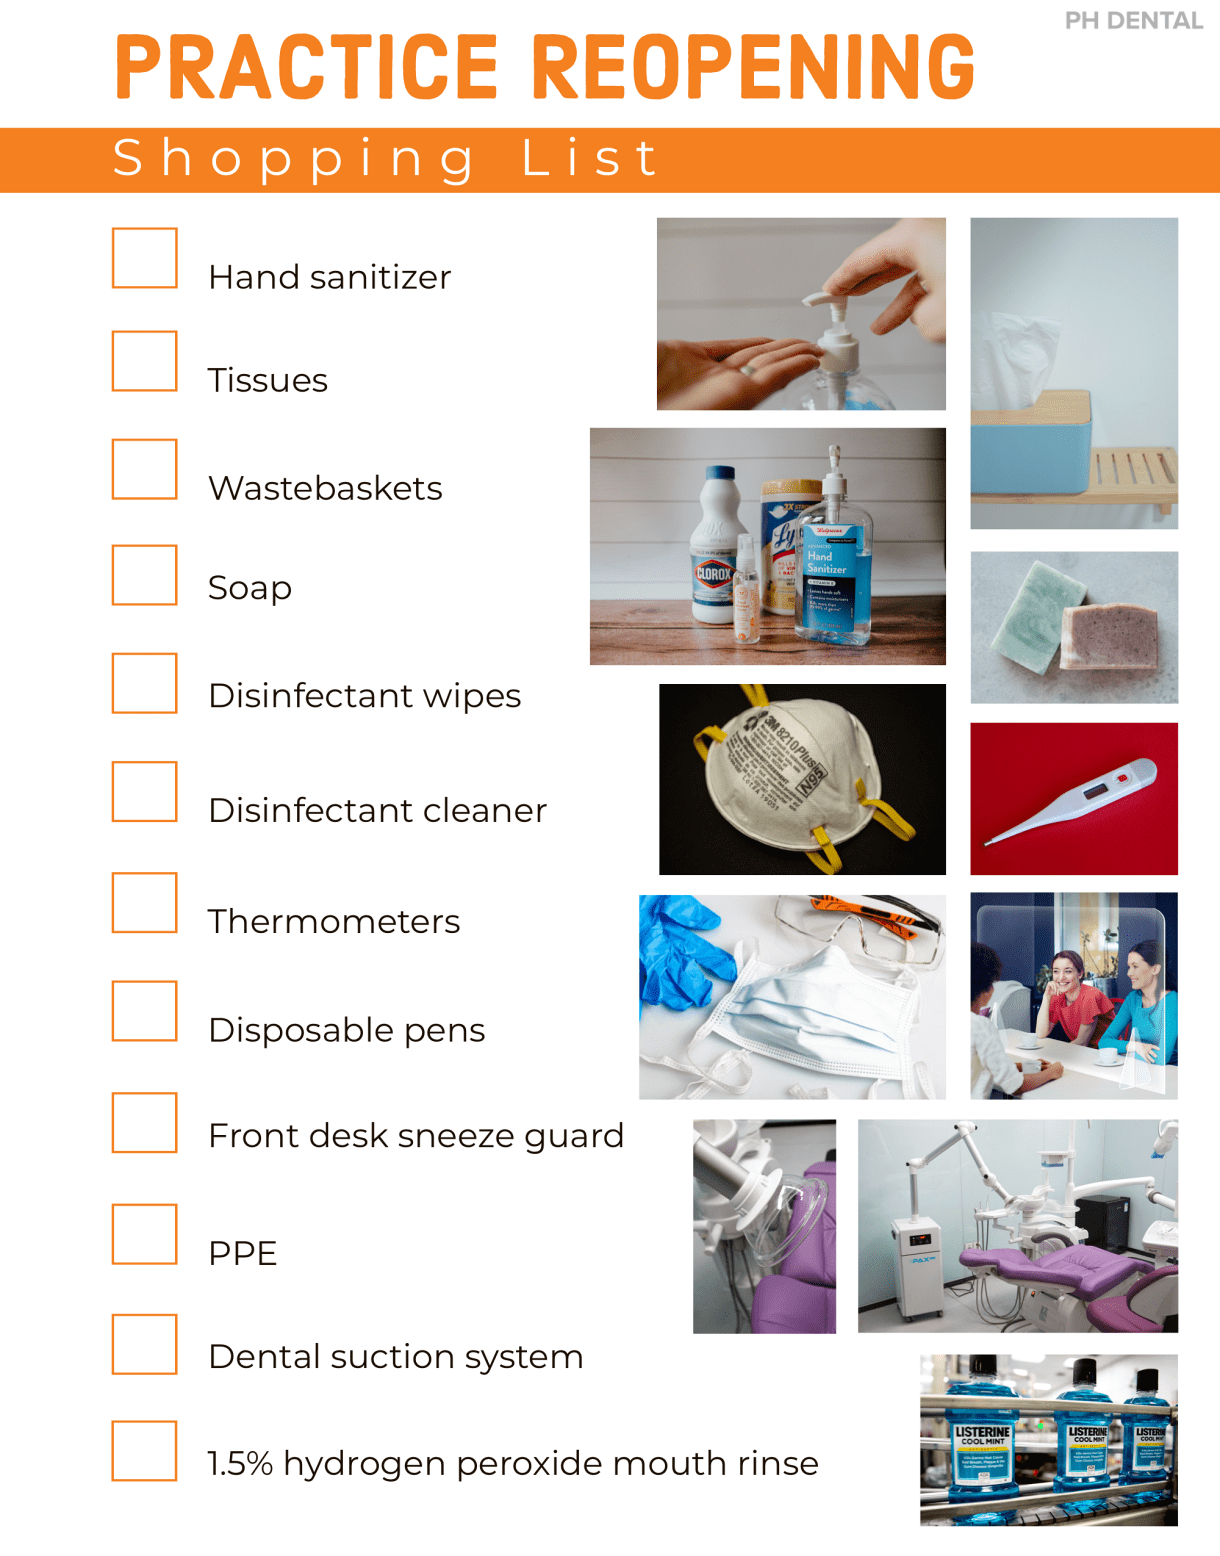 dental practice reopening shopping list